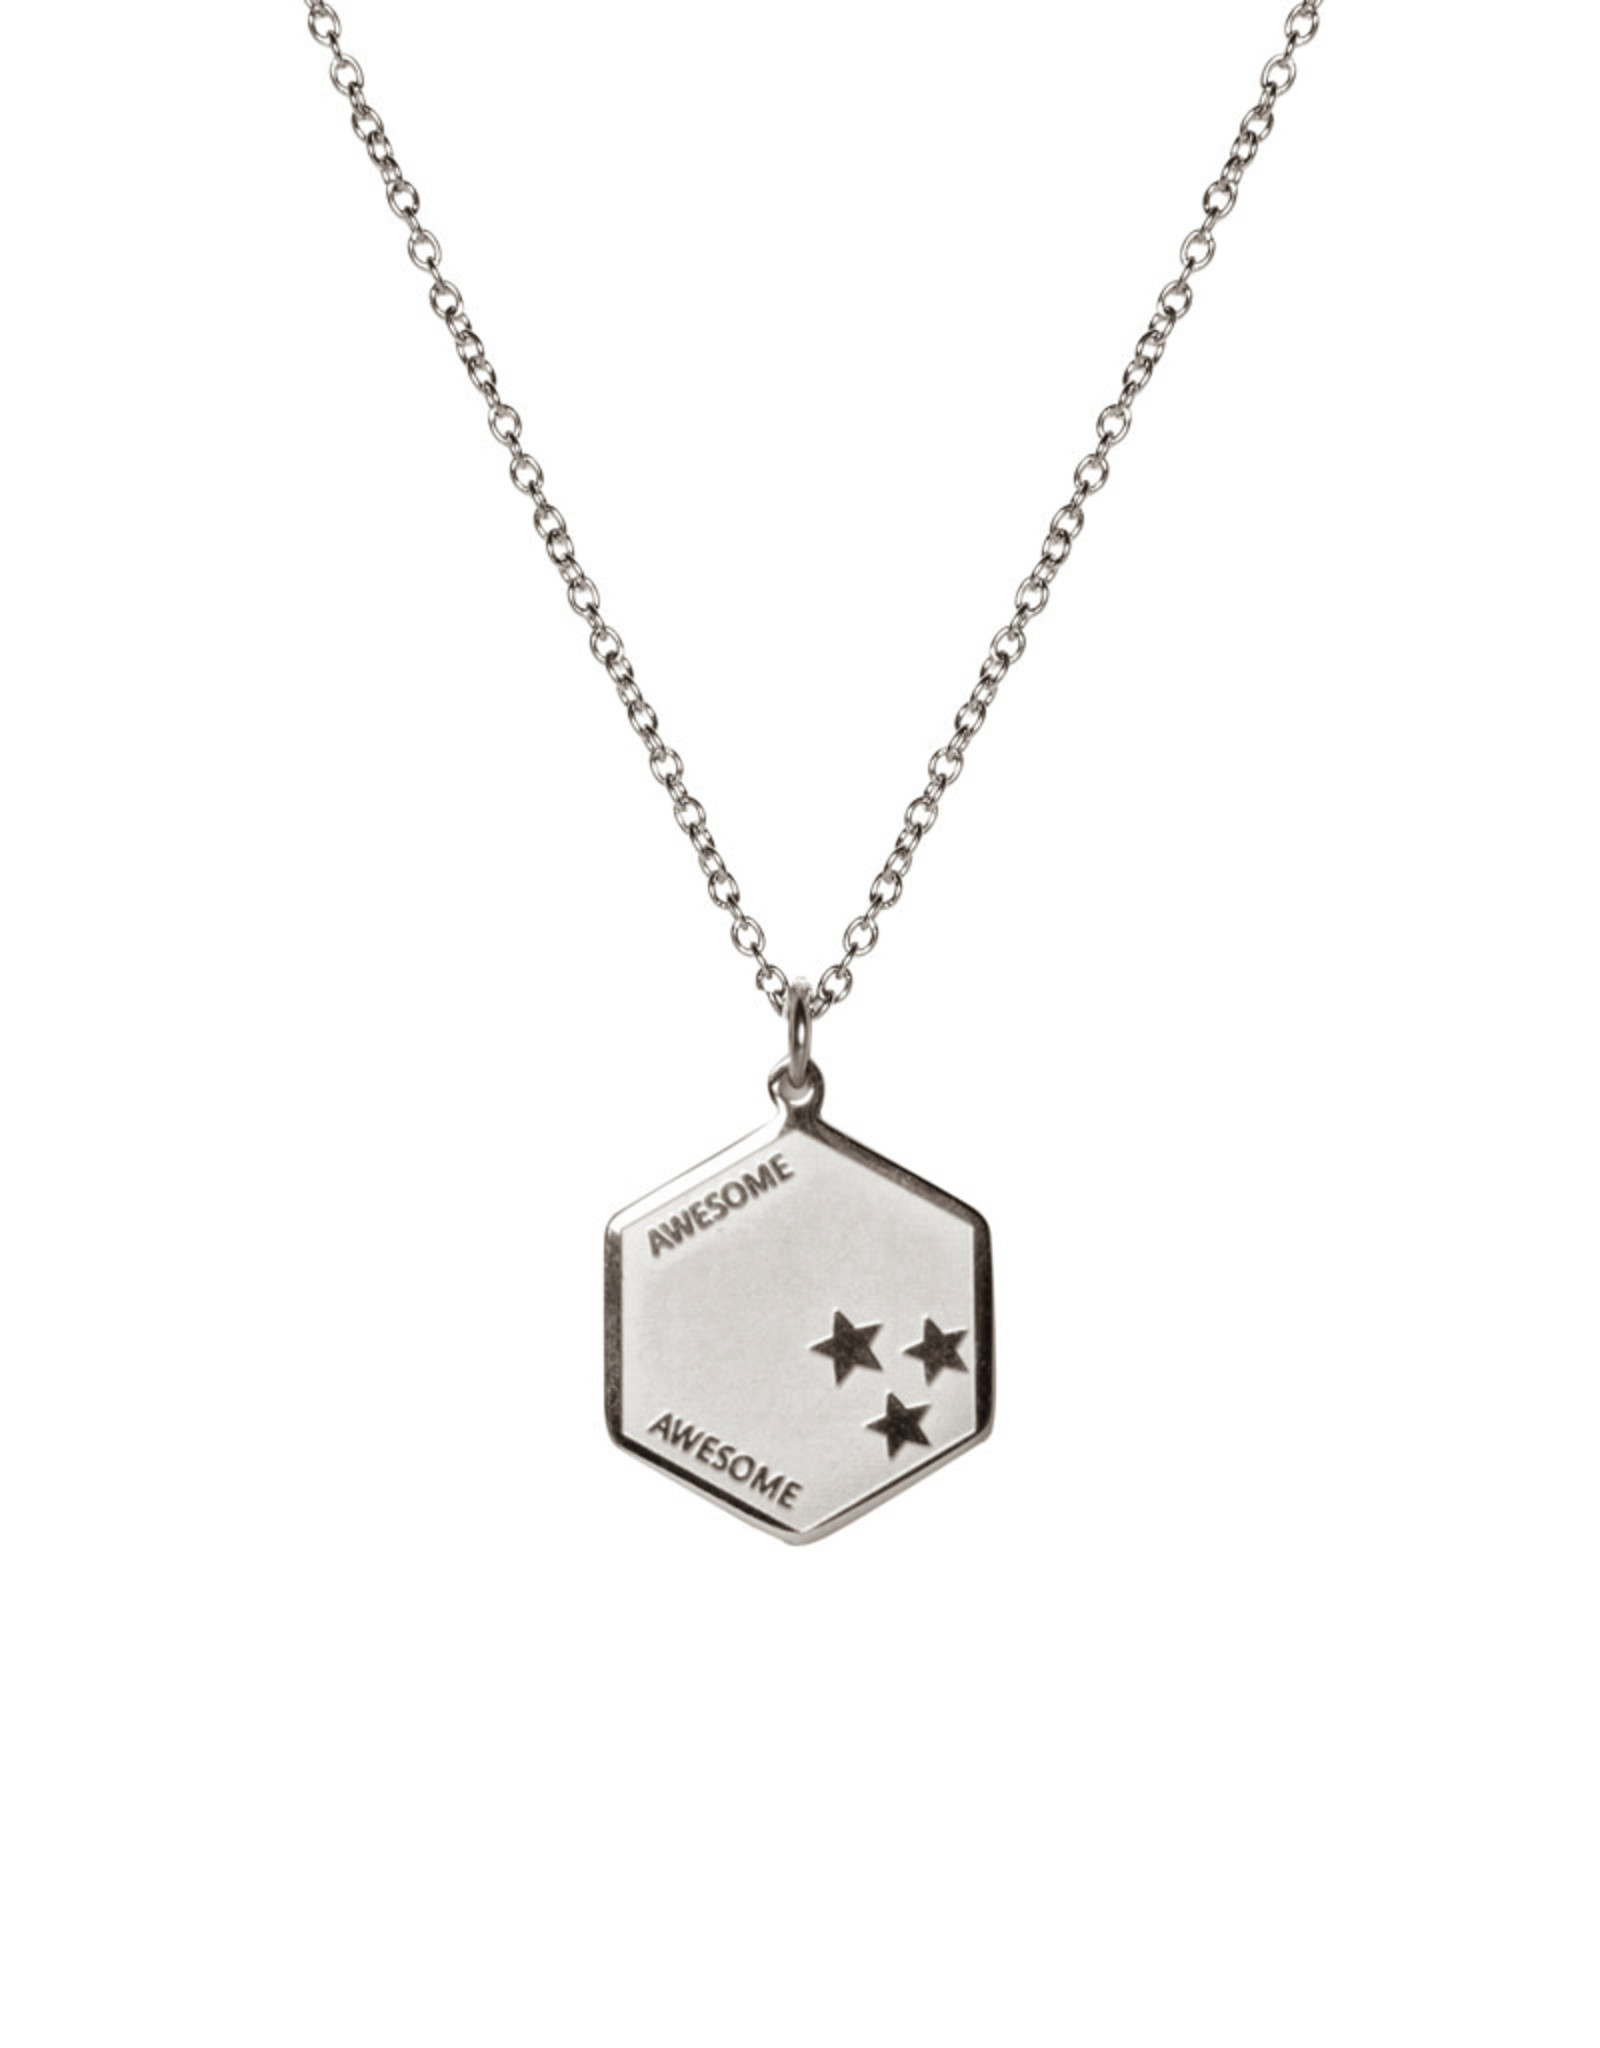 Madam the Label Madam the Label ketting Awesome steel